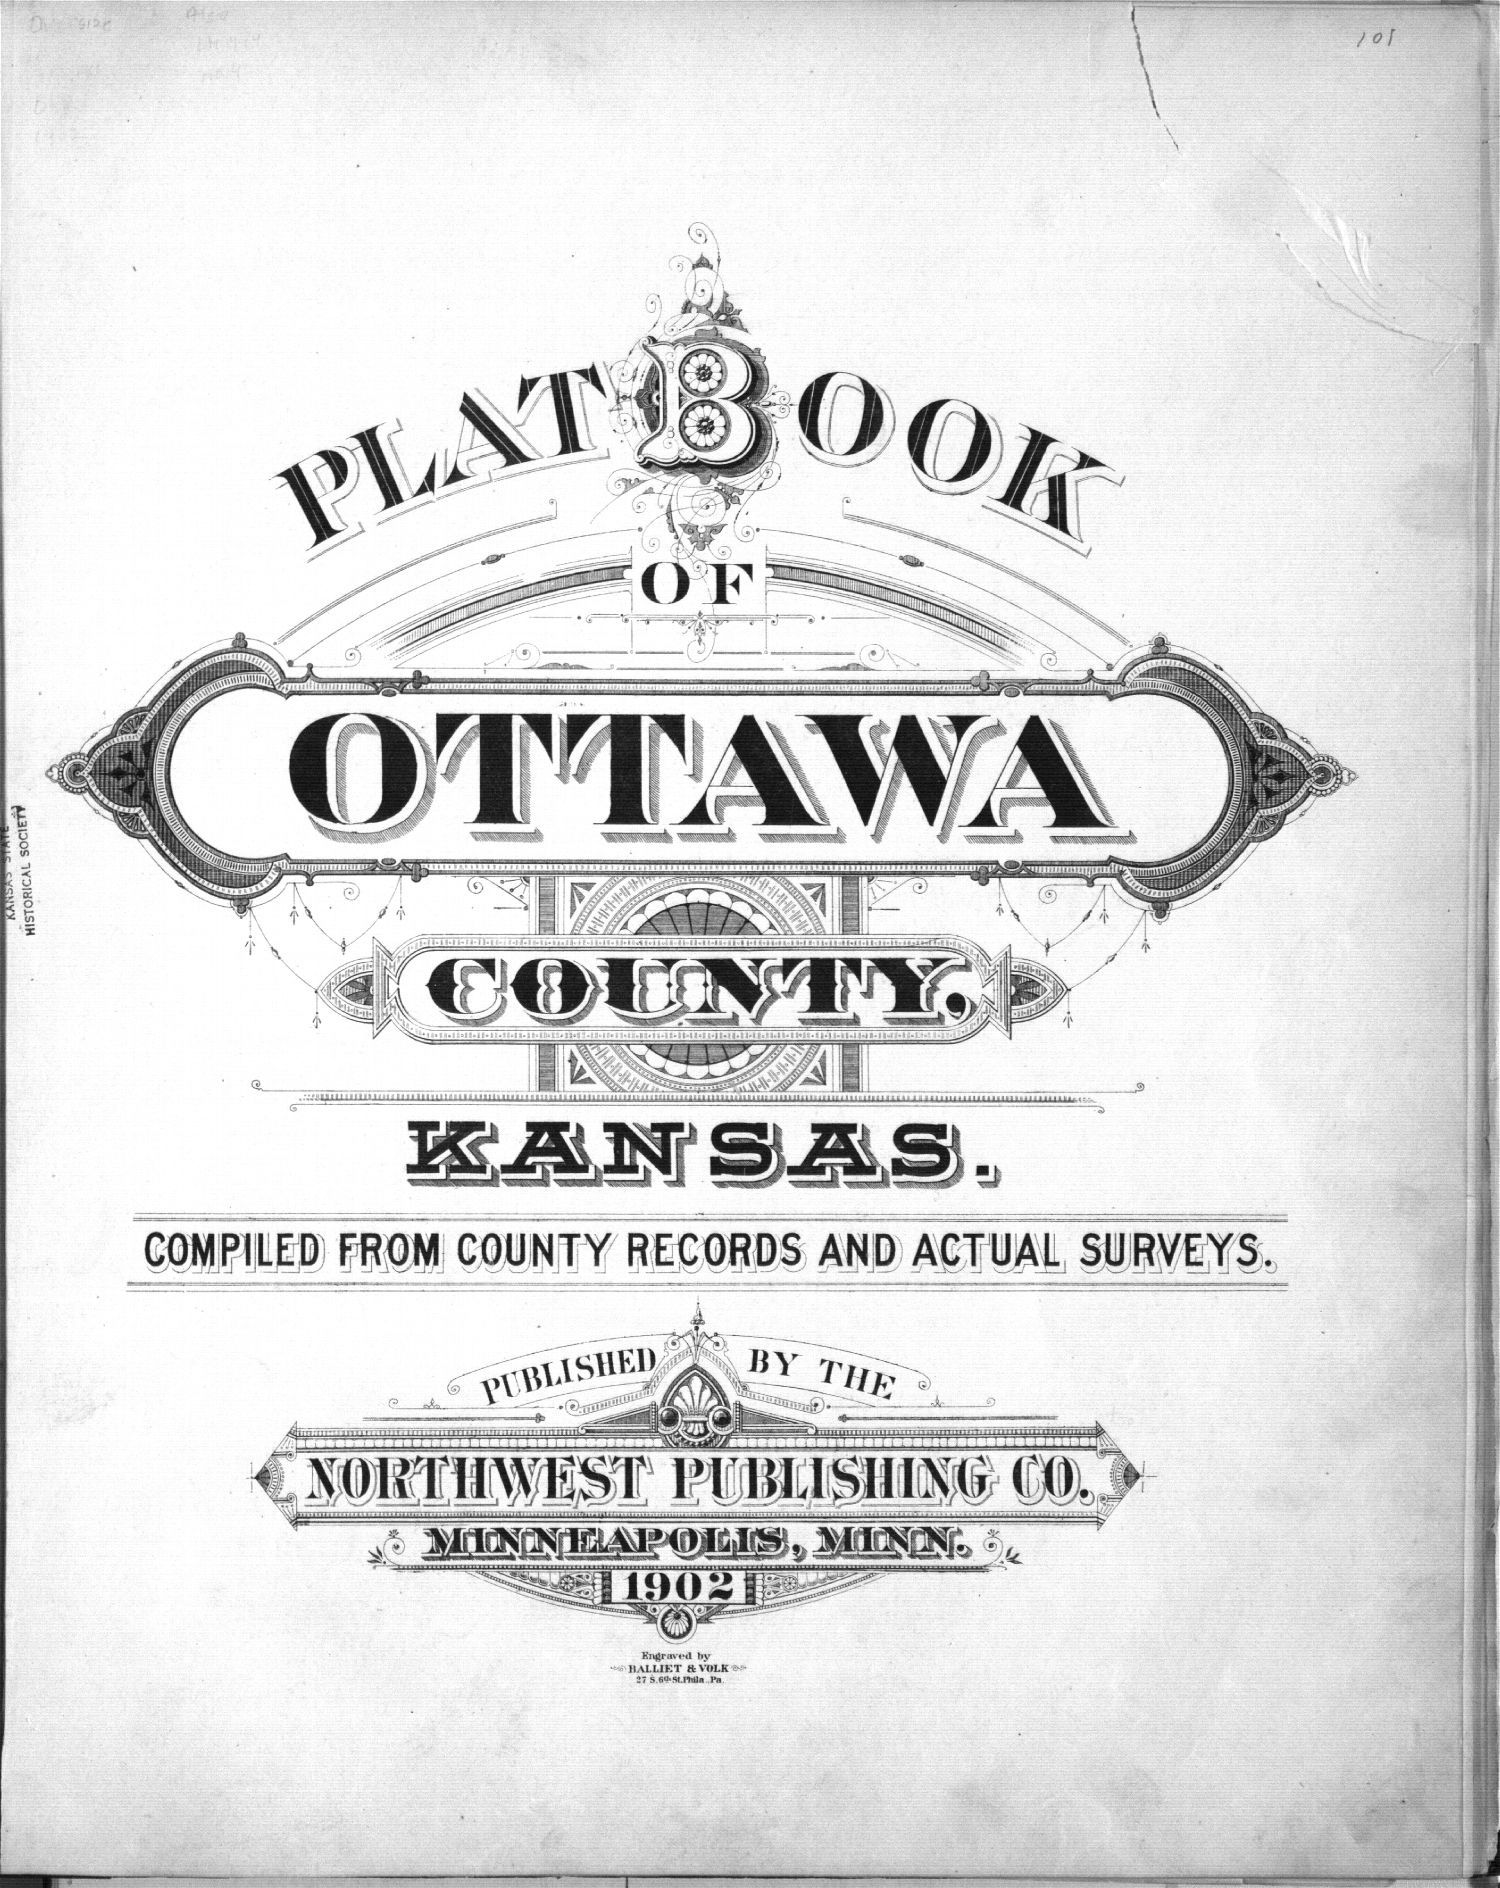 Plat book of Ottawa County, Kansas - Title Page